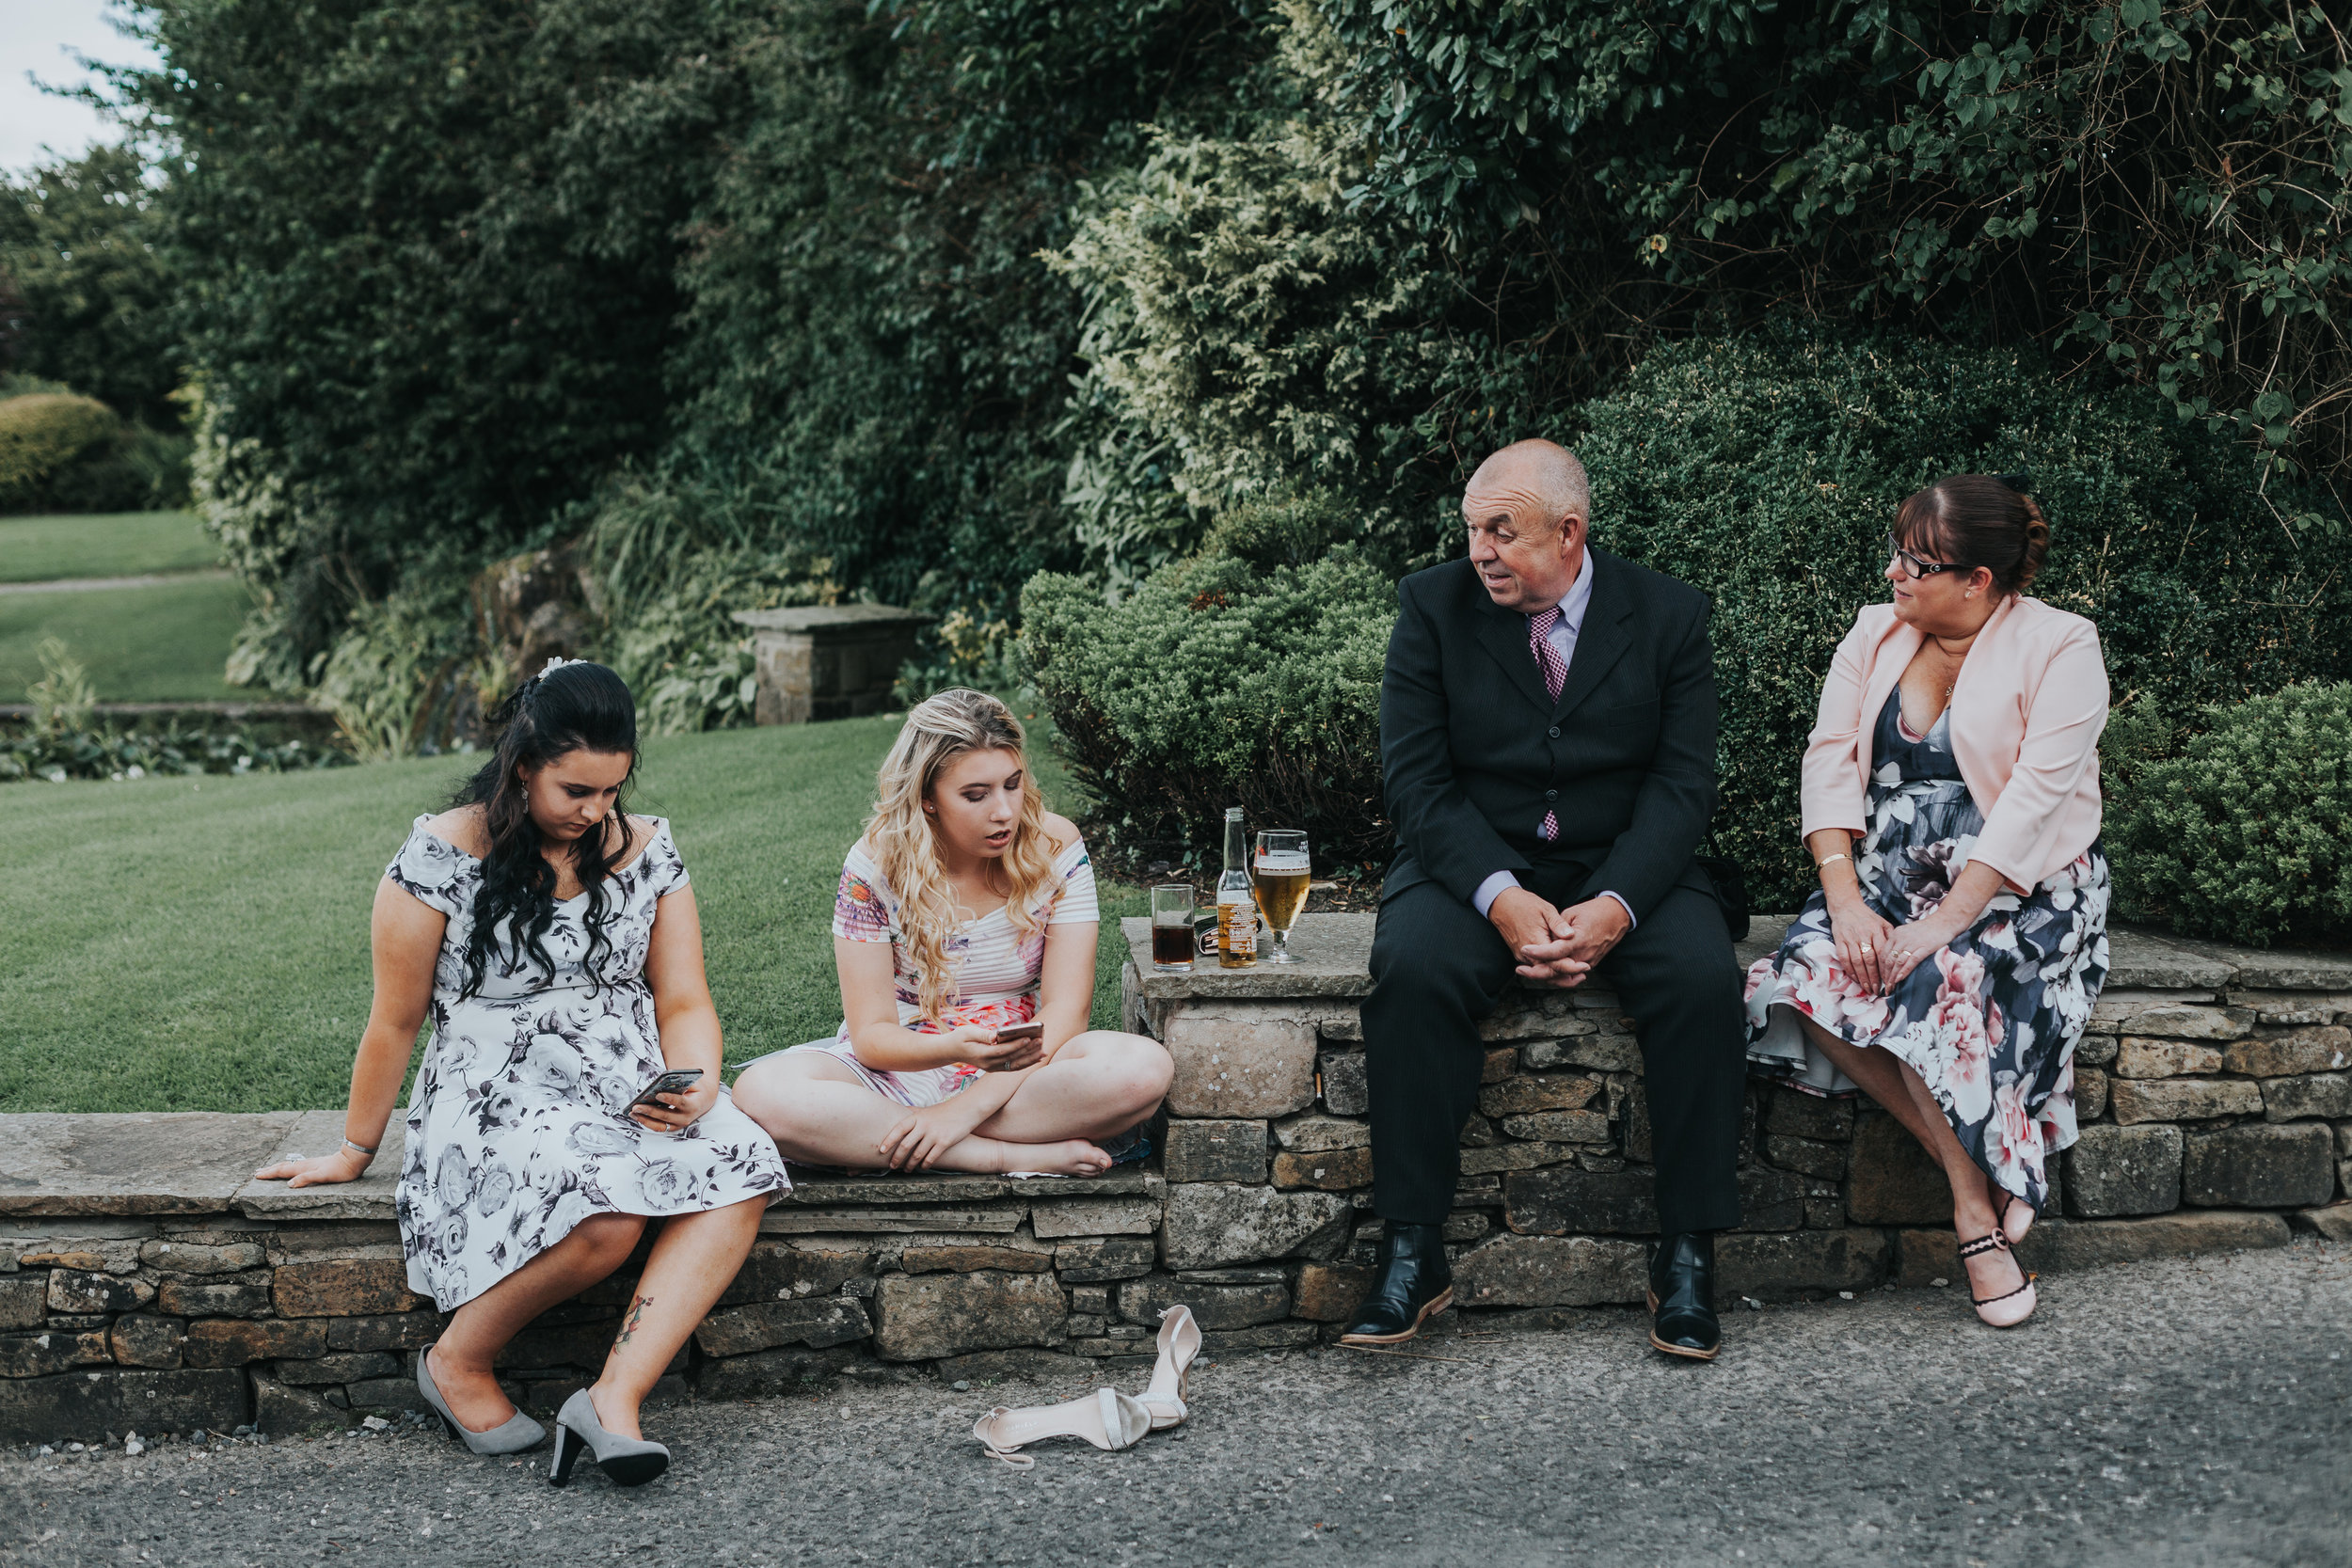 Four wedding guests sit together, one has given up on her shoes already.